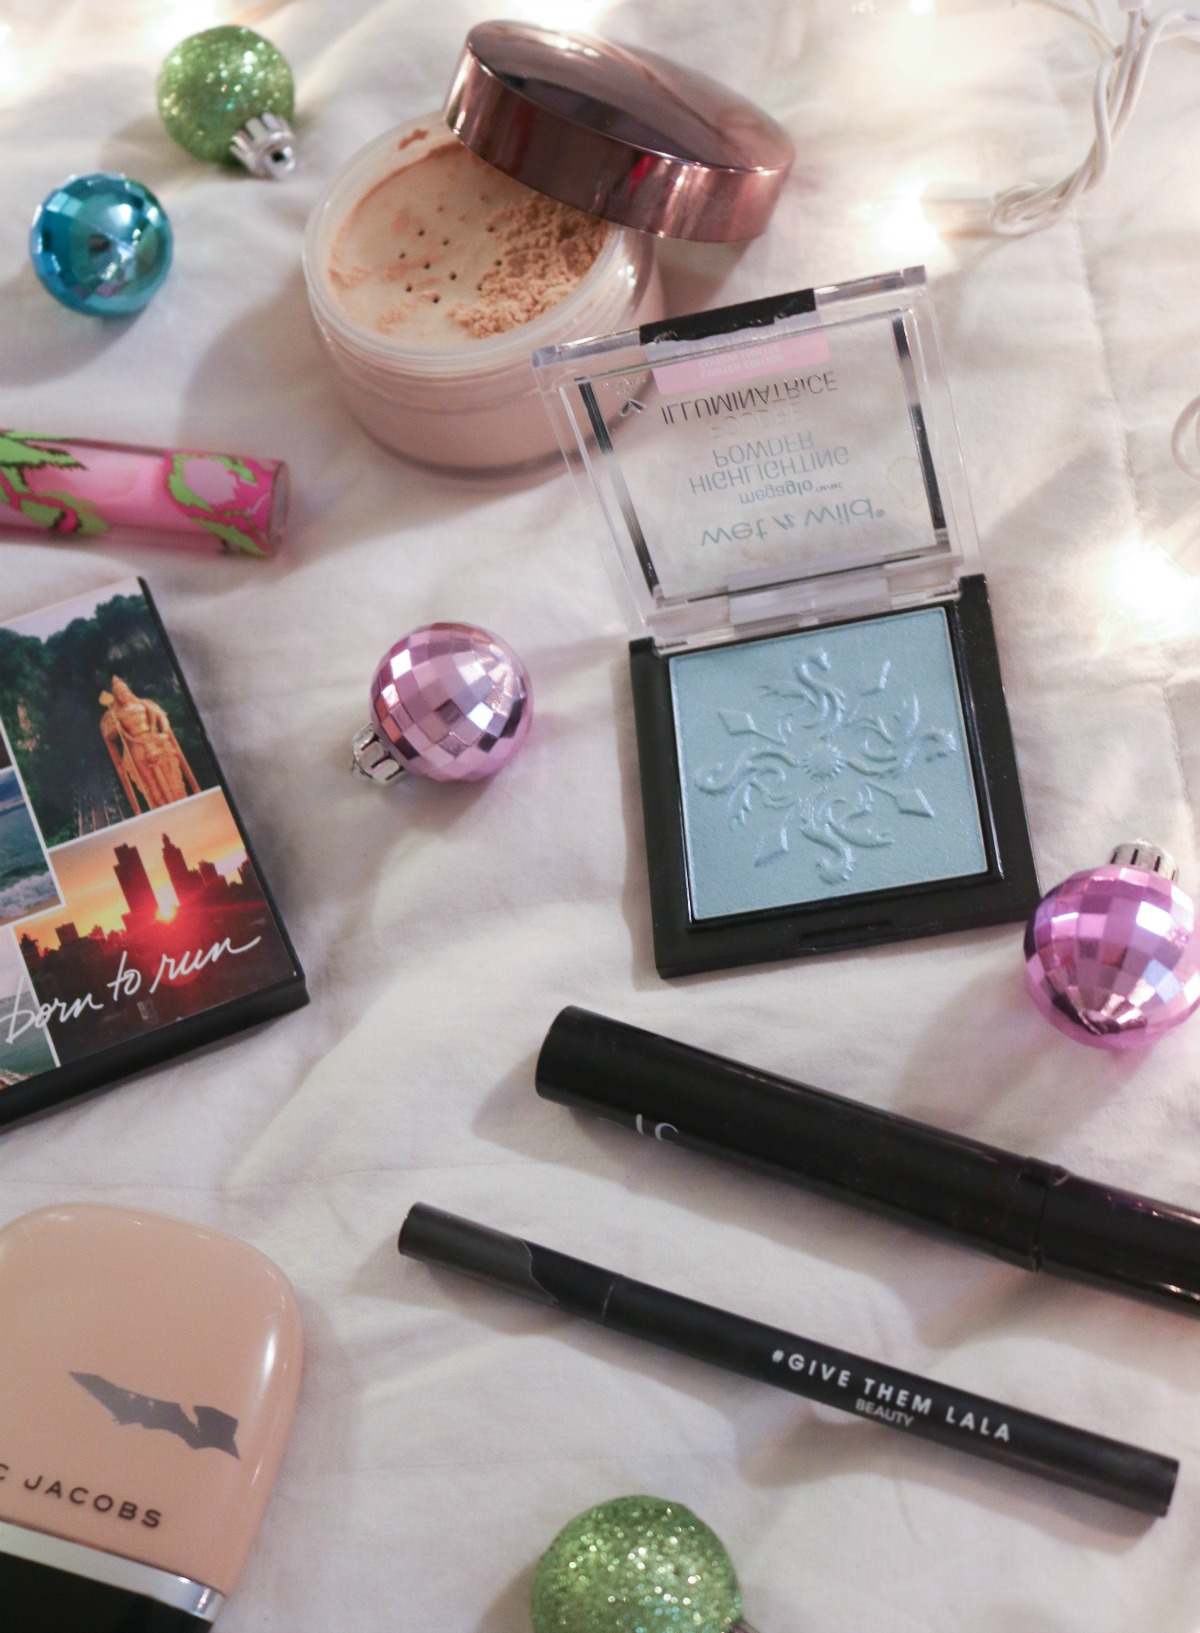 Best 2018 Makeup Releases I Beauty Blog DreaminLace.com #Bestof2018 #MakeupAddict